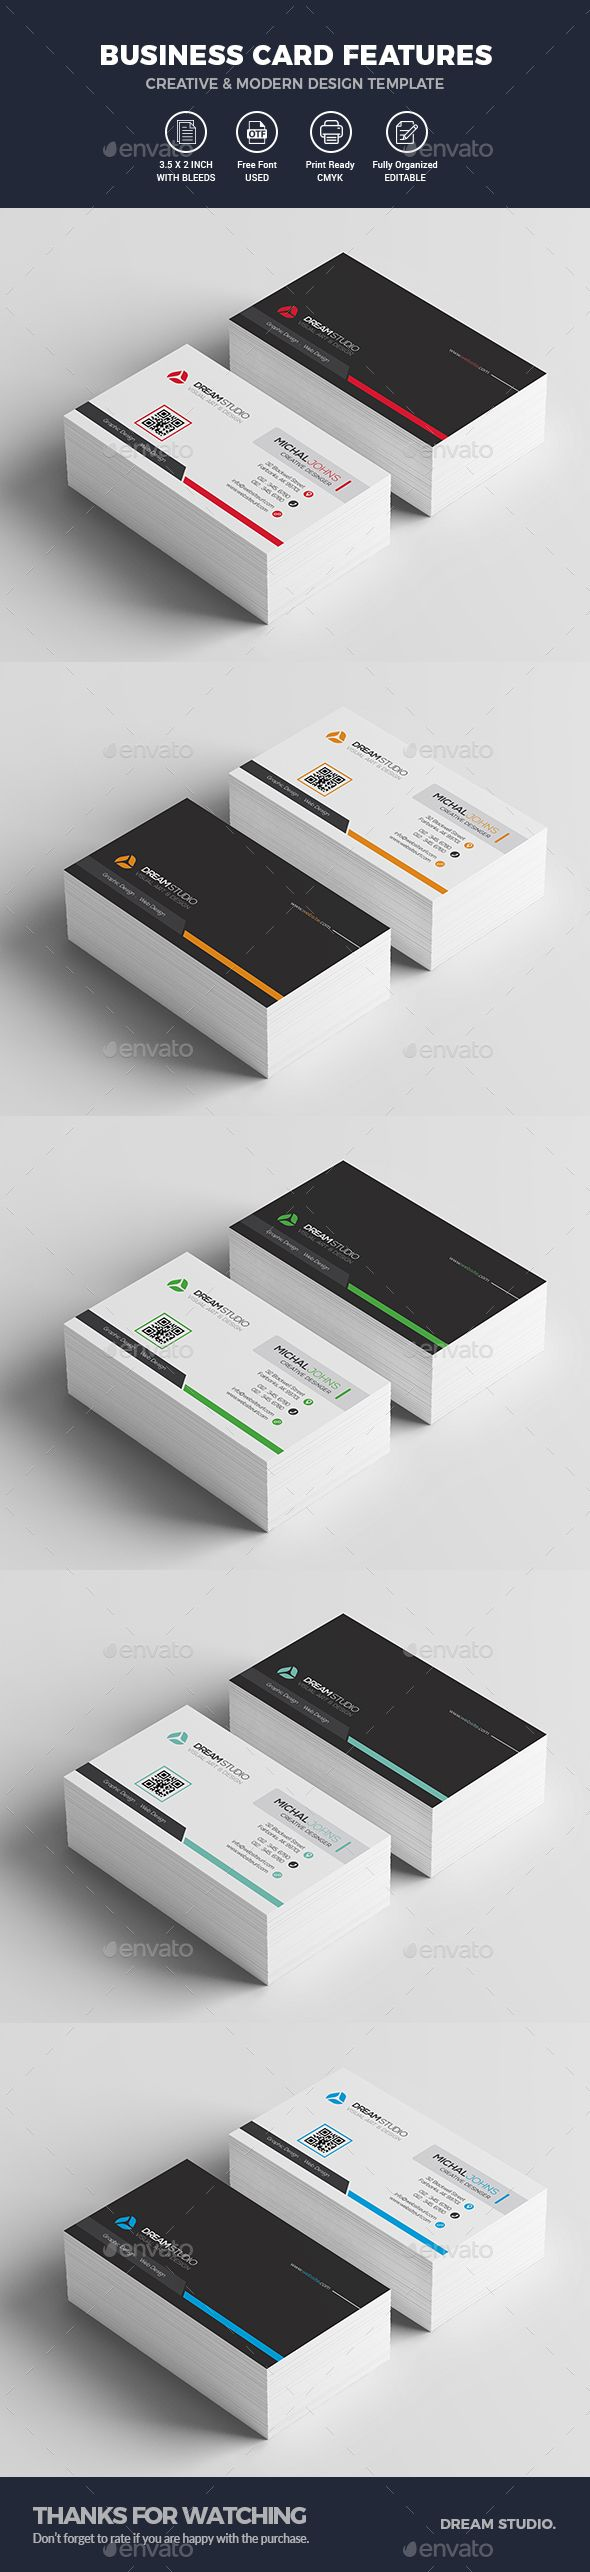 572 best business card inspiration images on pinterest business modern business card template business cards print templates download here https cheaphphosting Image collections